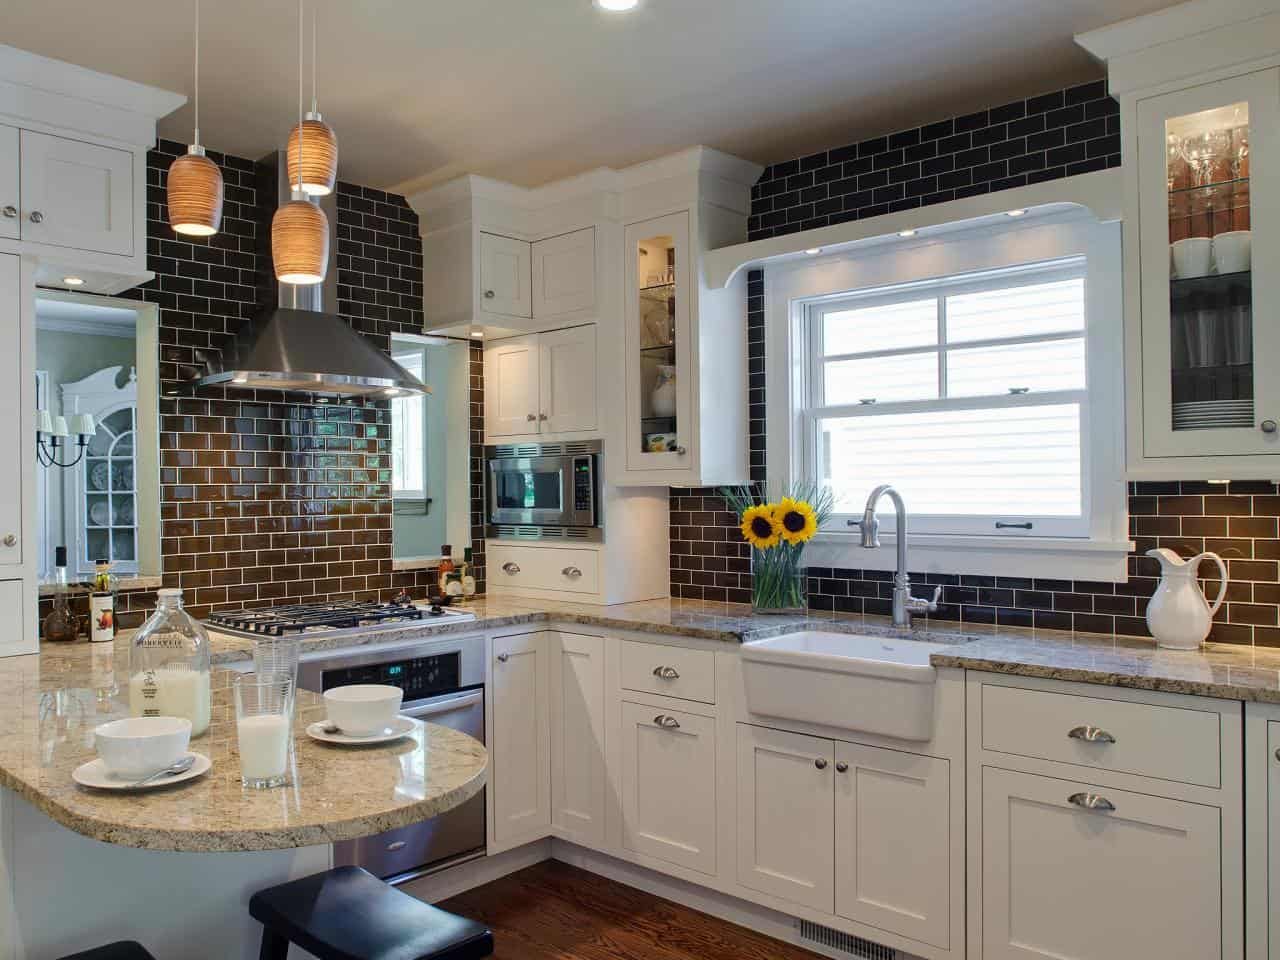 white kitchen backsplashes 11 kitchen backsplash ideas you should consider 15437